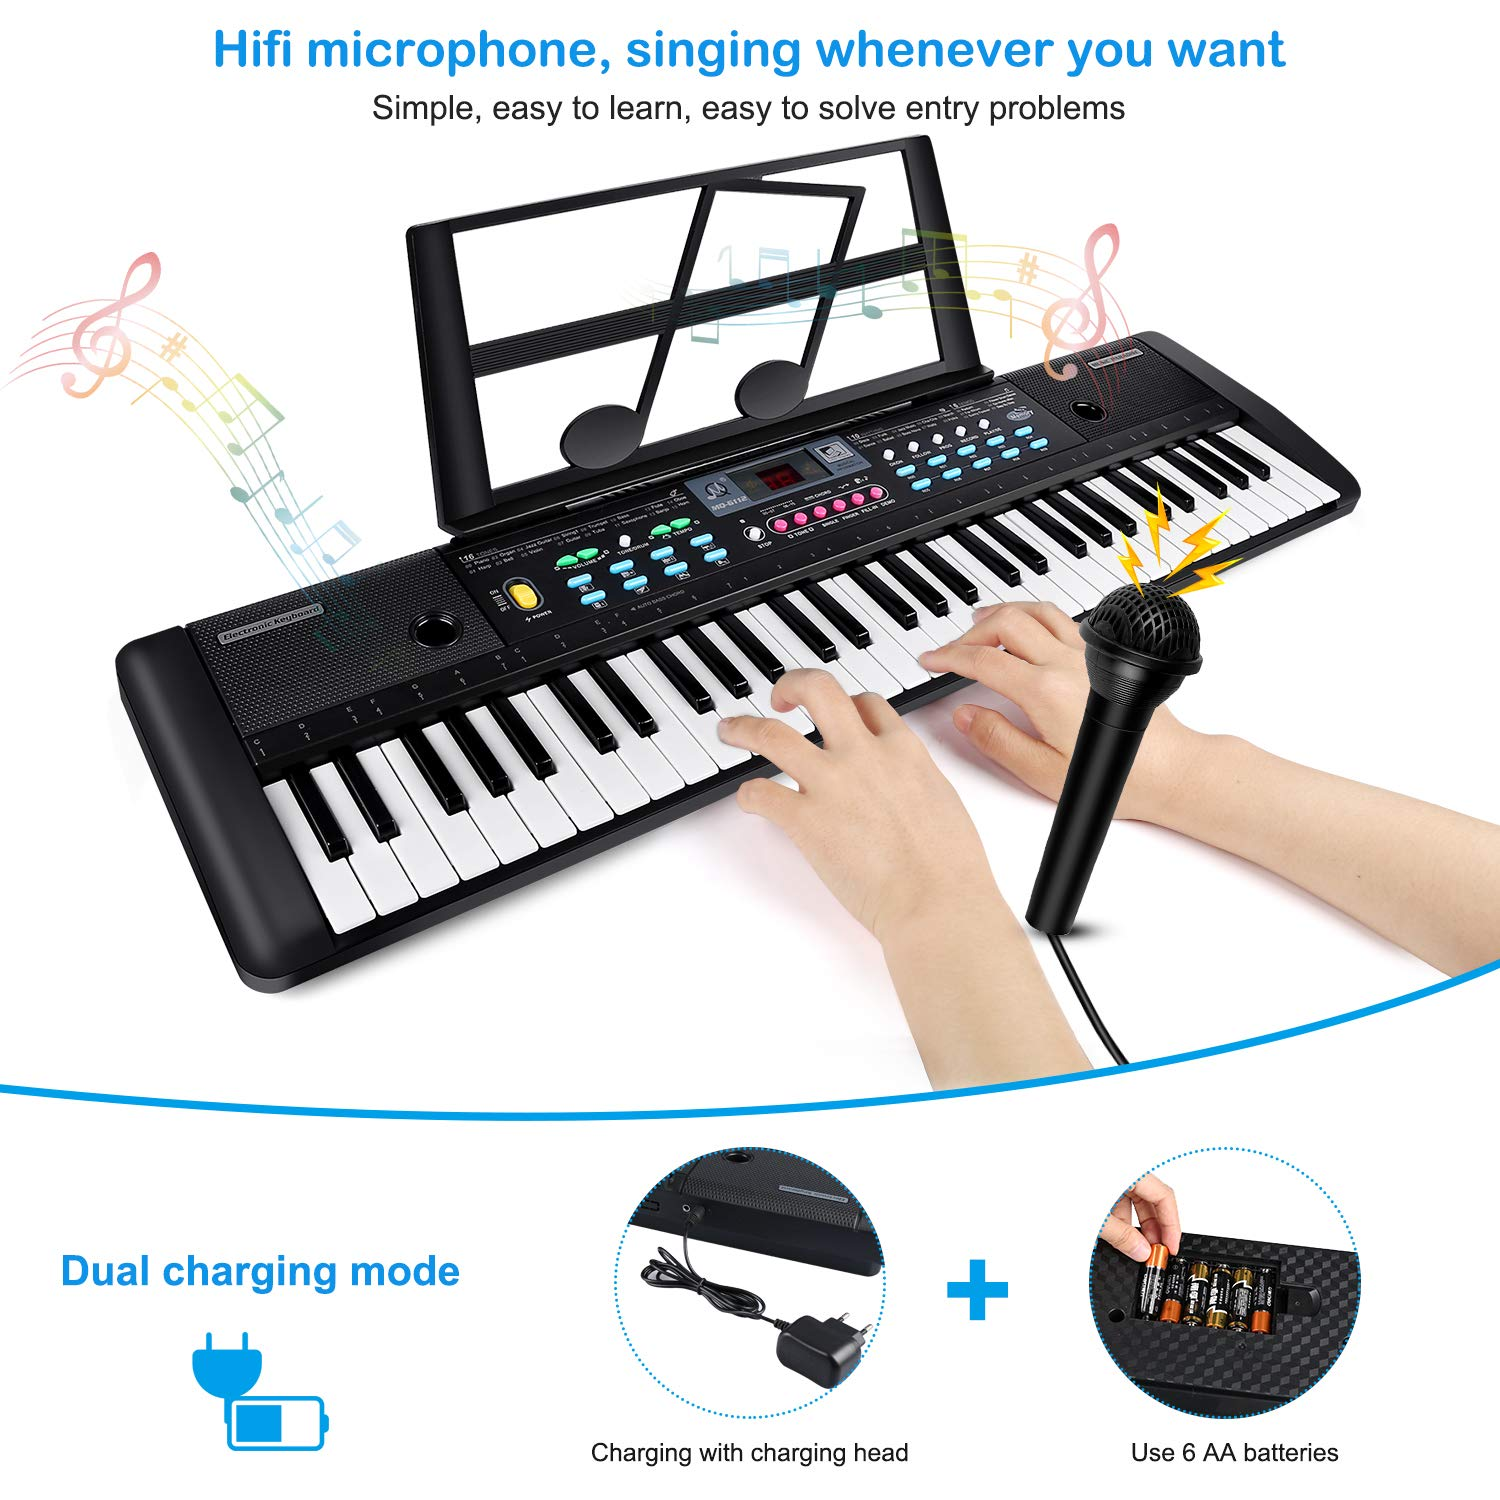 ZJTL 61-Key Digital Electric Piano Keyboard & Music Stand & microphone- Portable Electronic Keyboard (Kids & Adults) MQ-6112 by ZJTL (Image #4)